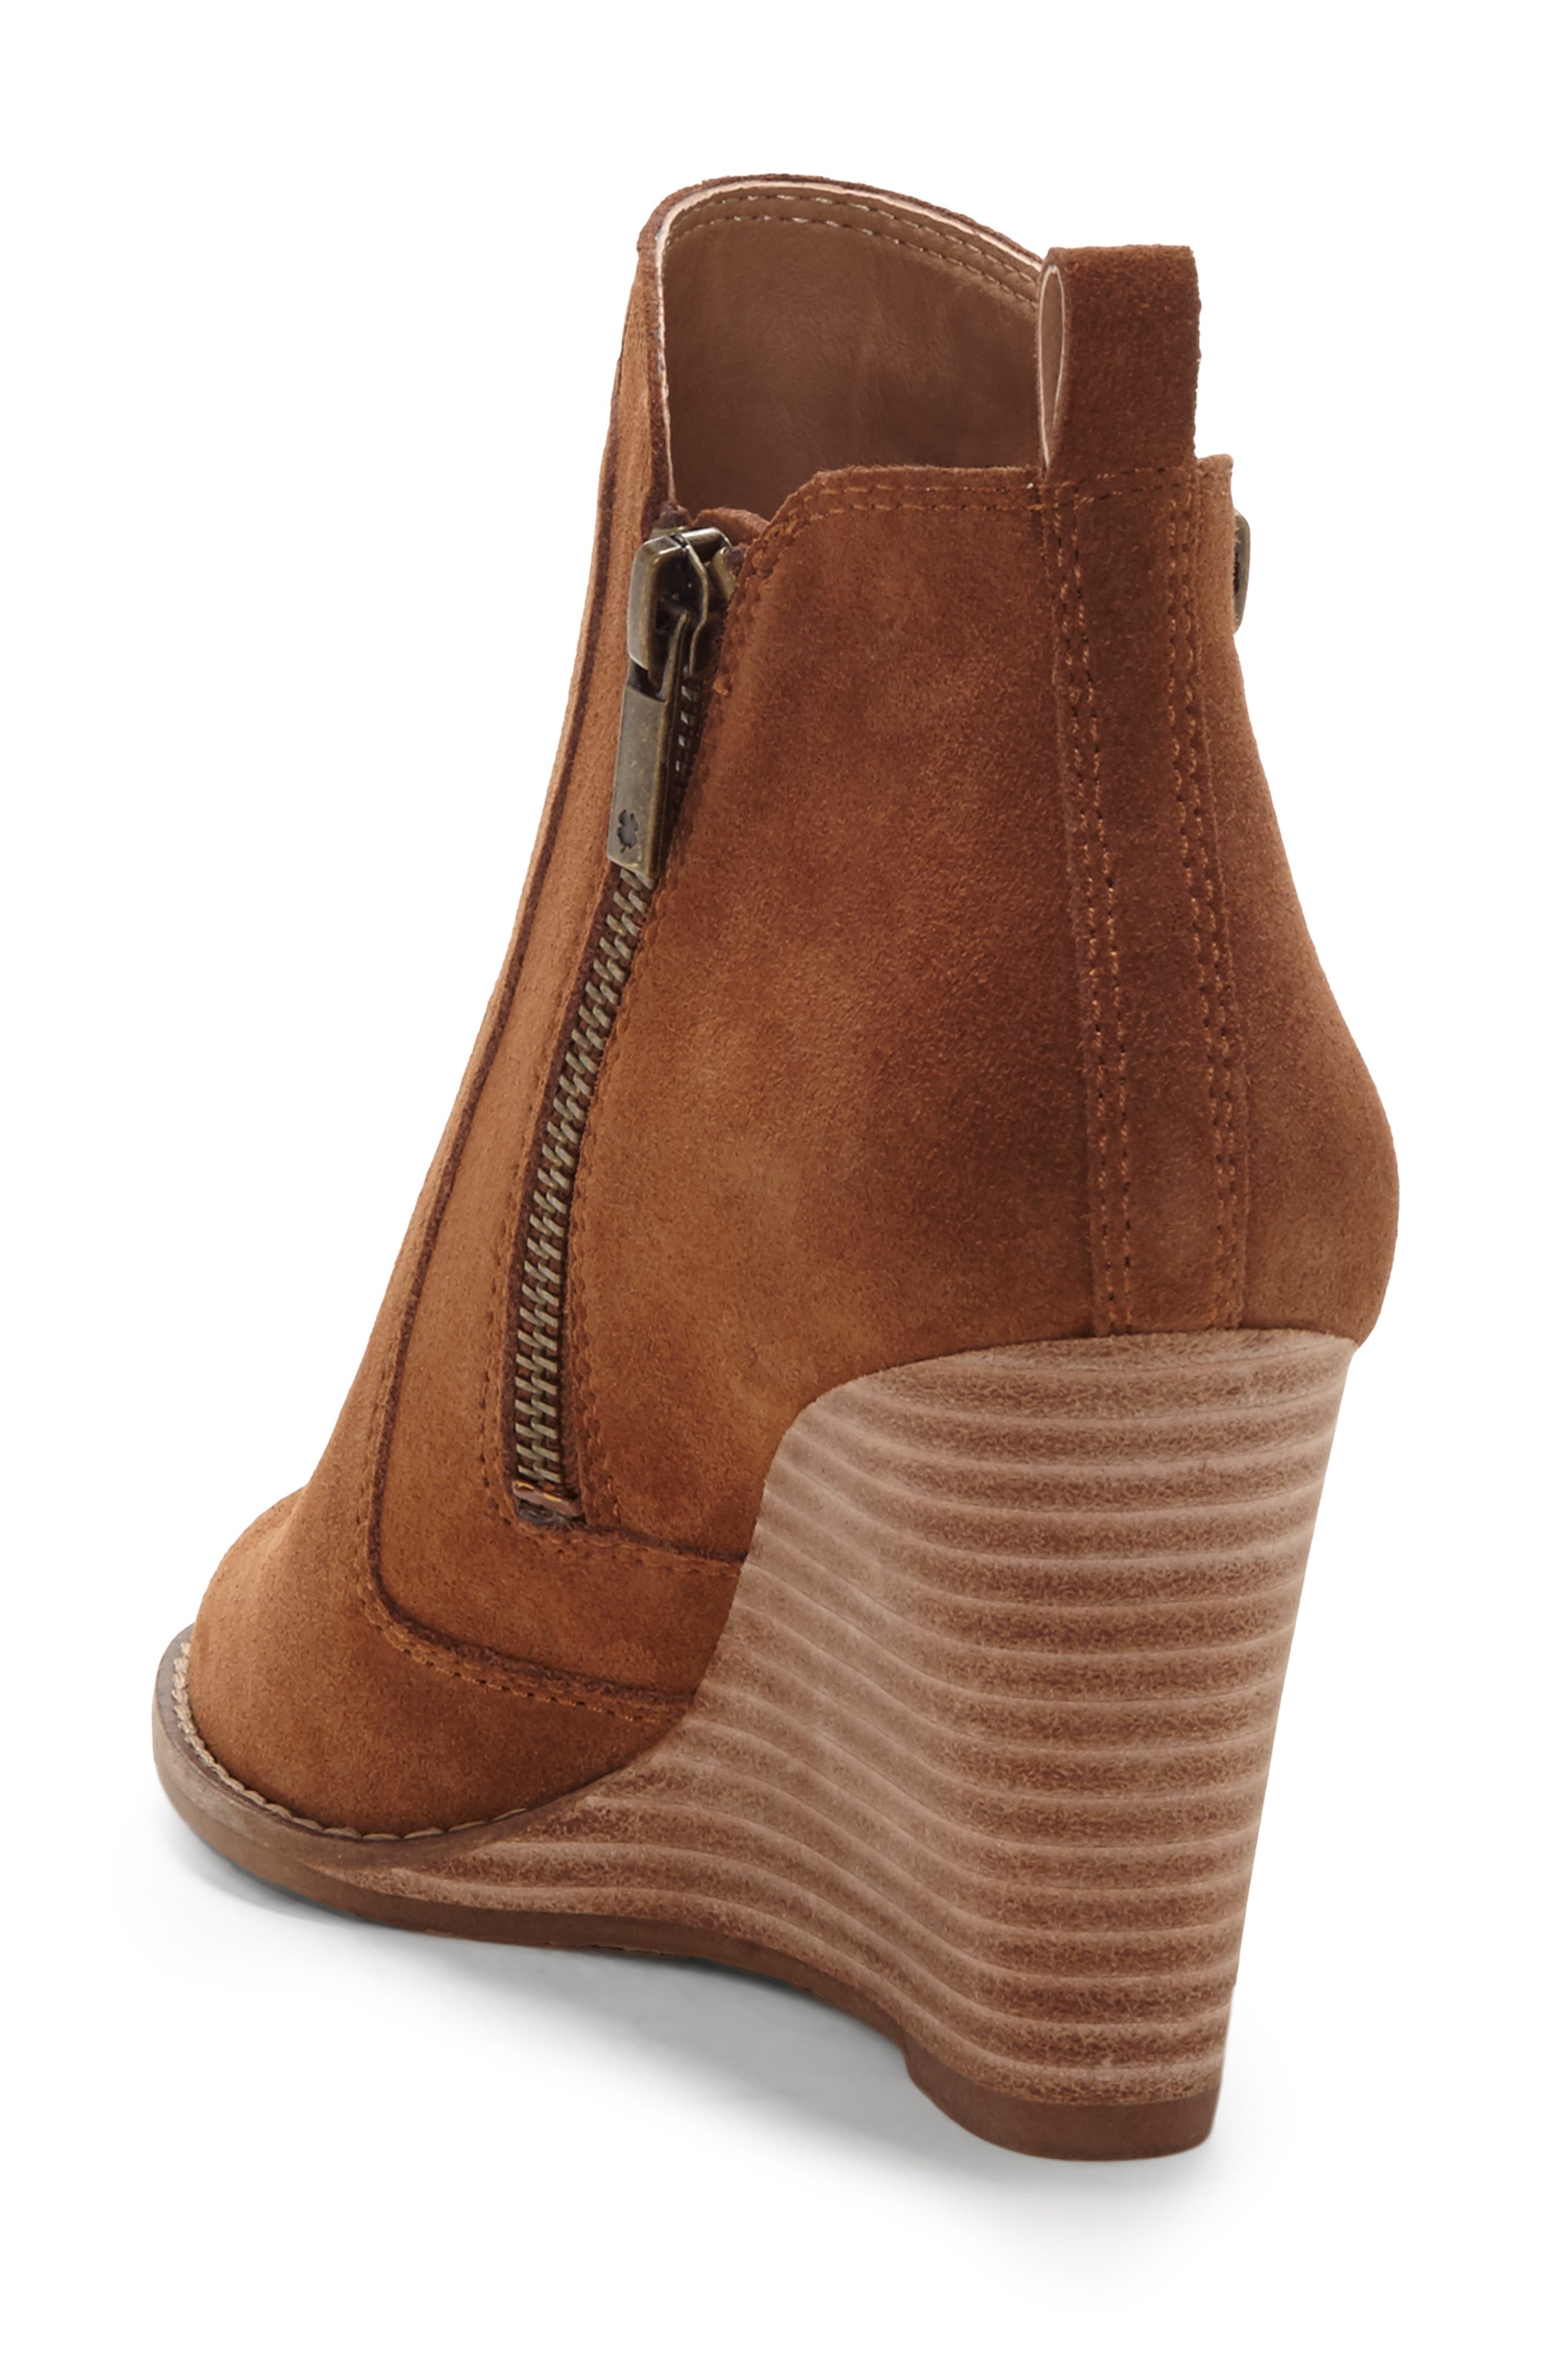 ce2a393a46dde Lucky Brand Wedge Booties for Women